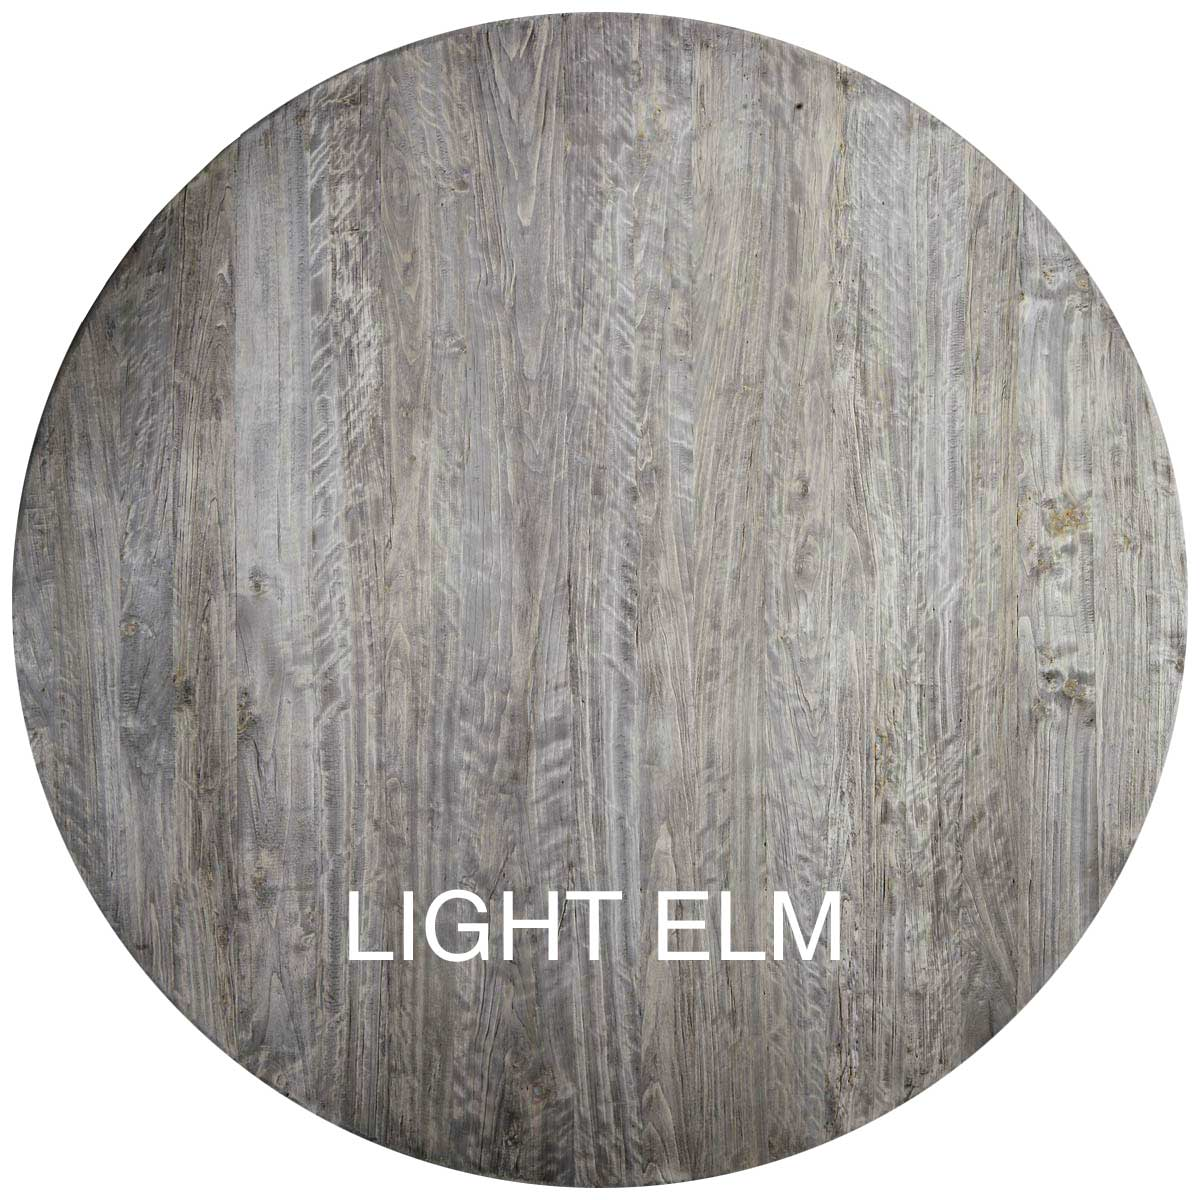 FINISH-LIGHT-ELM.jpg